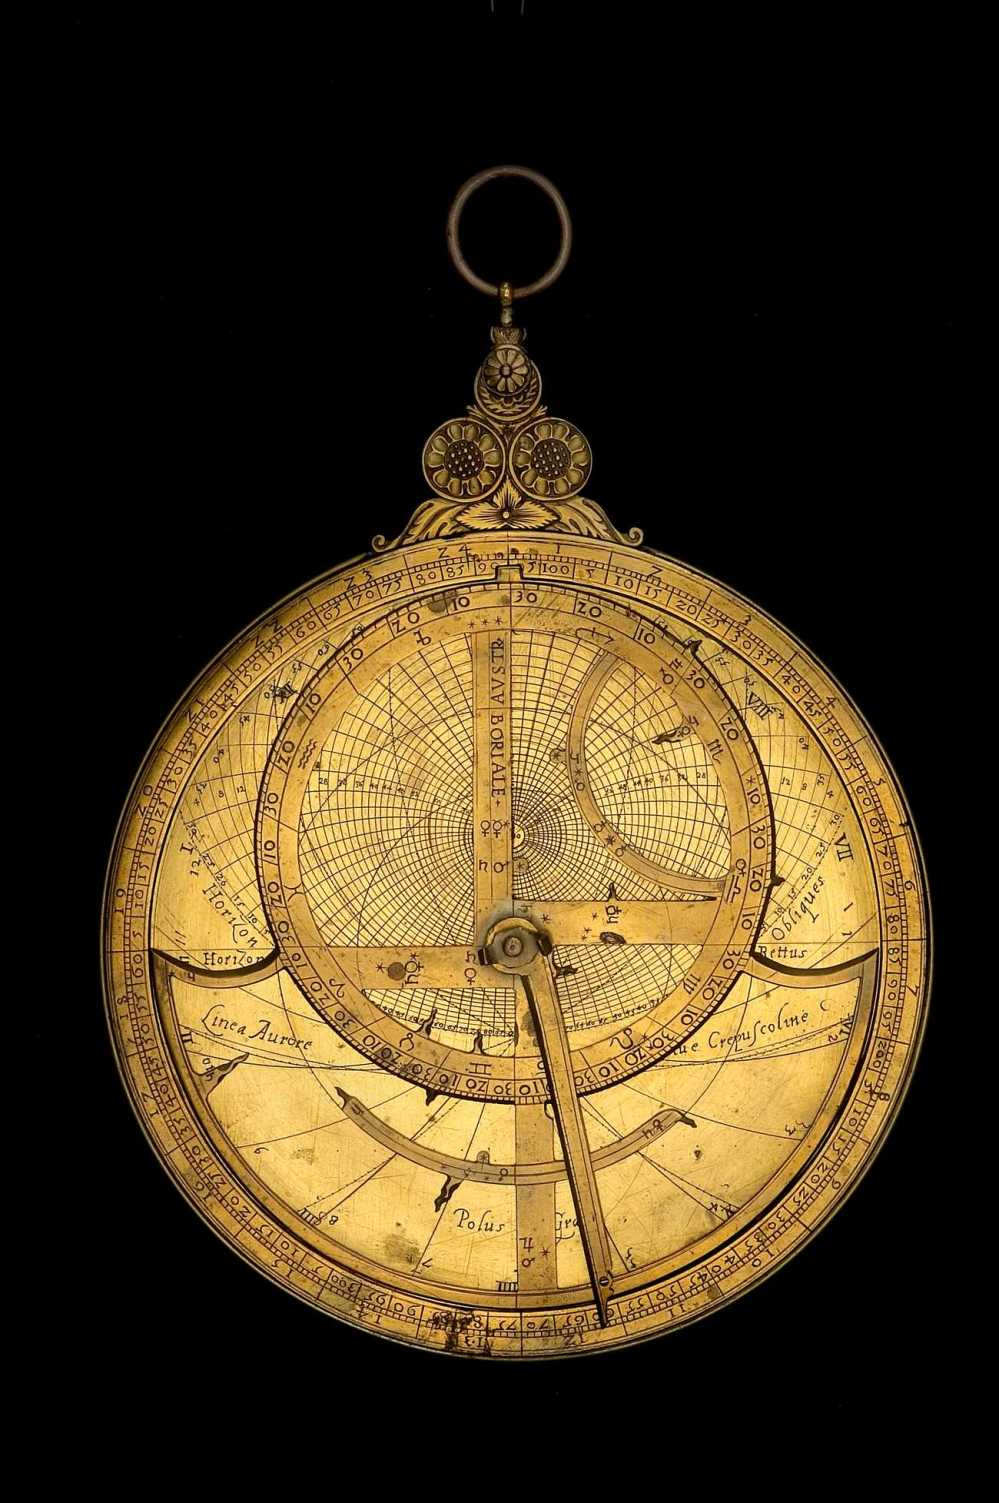 preview image for Astrolabe, German, 1521